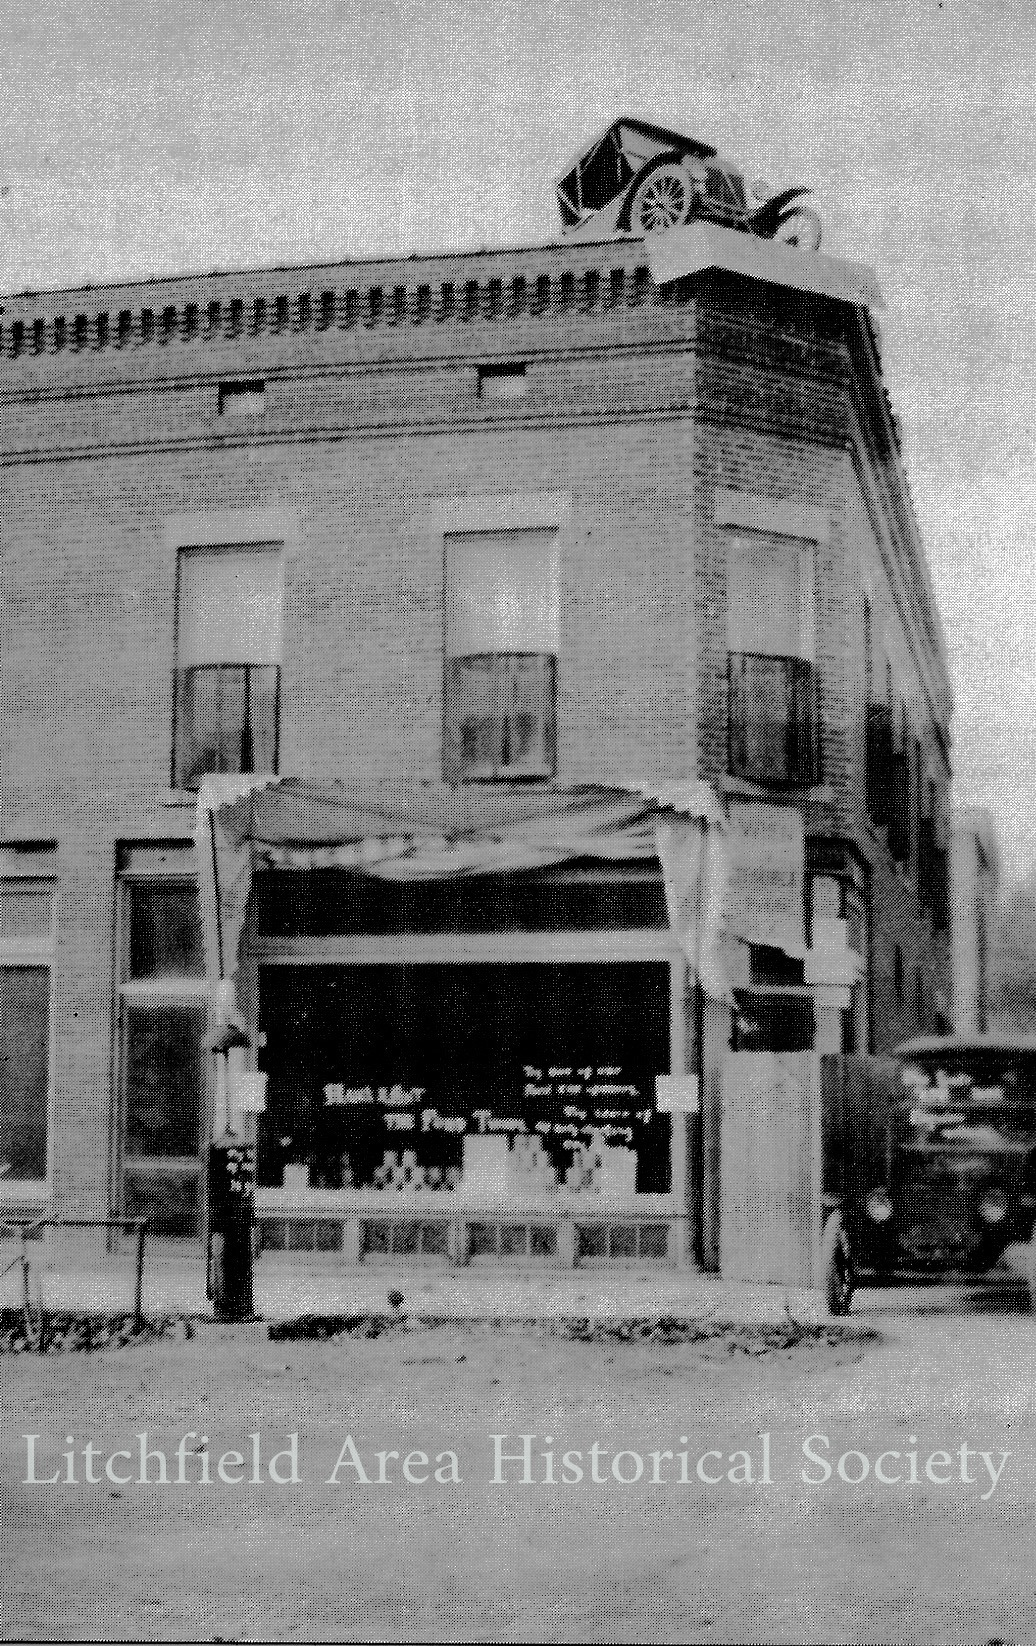 According to Chuck Lindsley, two of the rapscallions who put the car  on  top of the building were his dad, Merritt Lindsley, and Merrill Swope. The Lindsleys reportedly came to Hillsdale County in 1850.